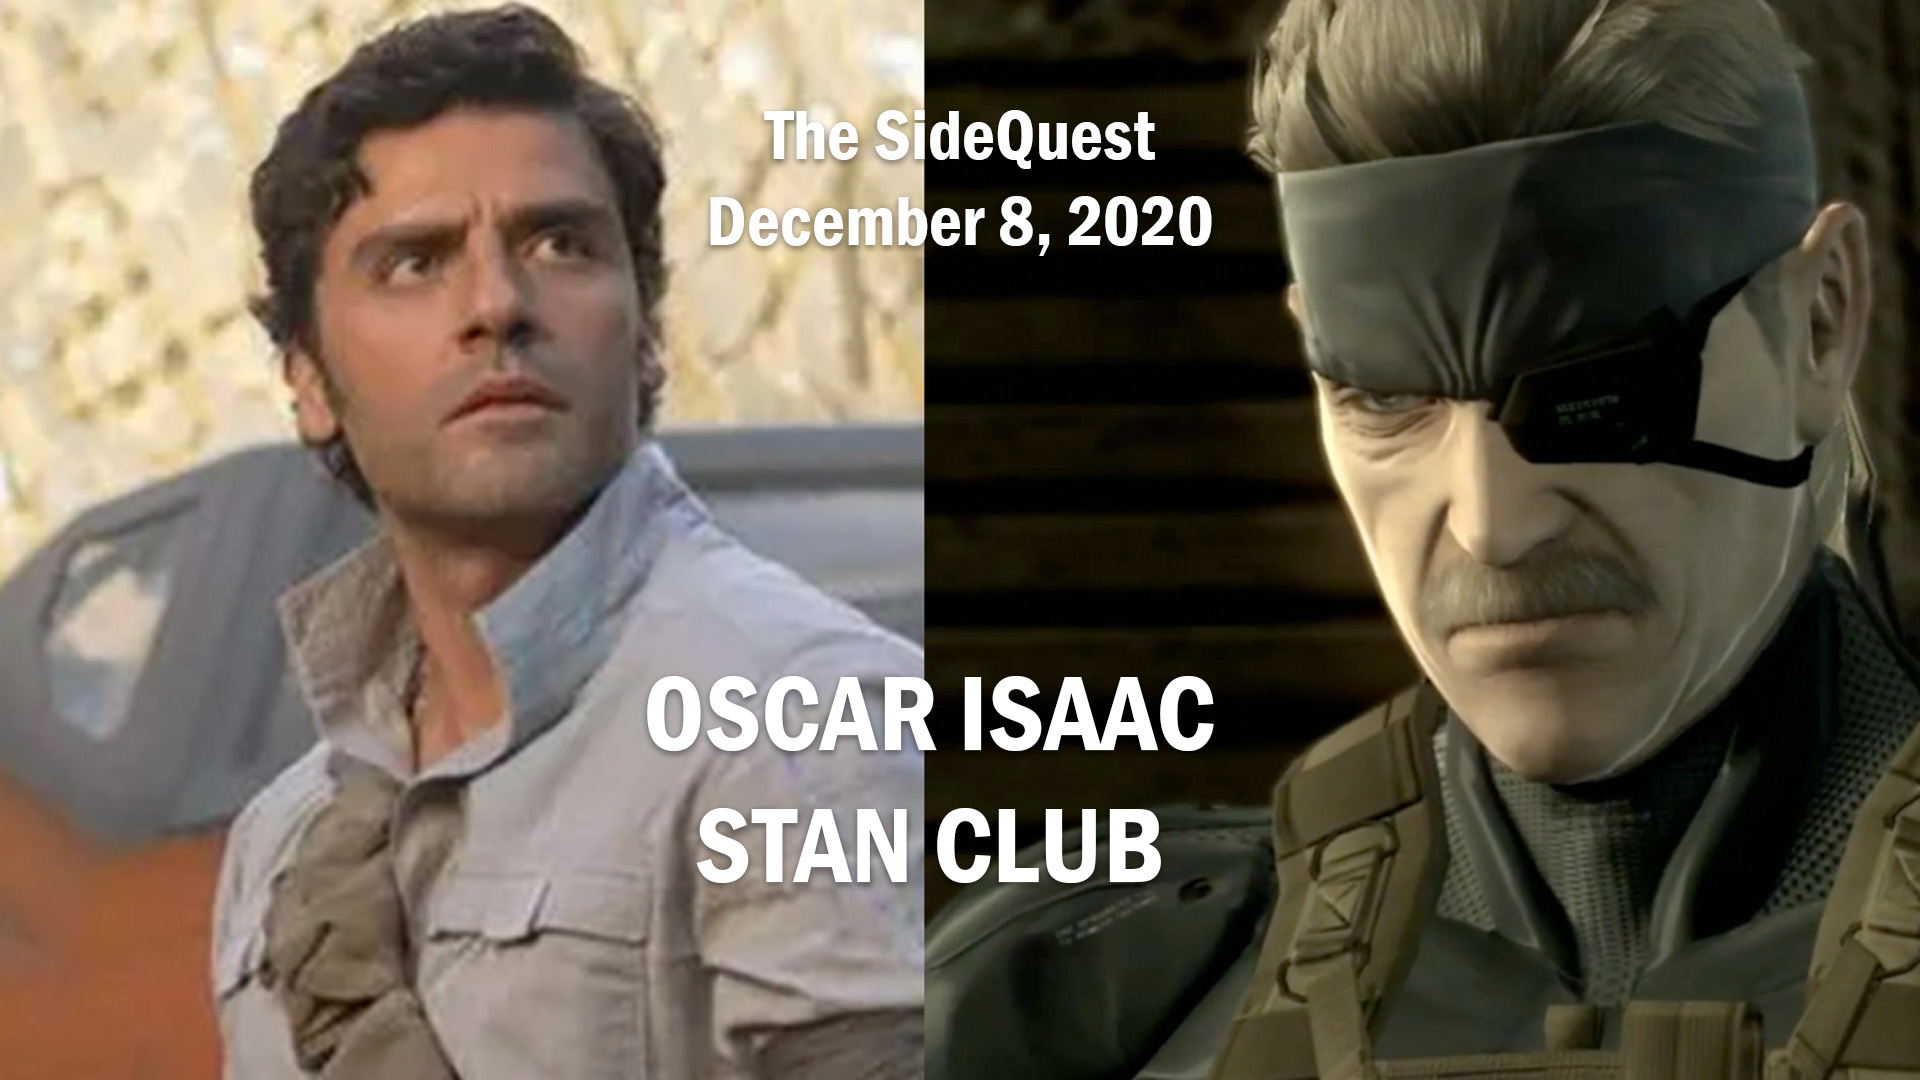 The SideQuest LIVE! December 4, 2020: Oscar Isaac Stan Club